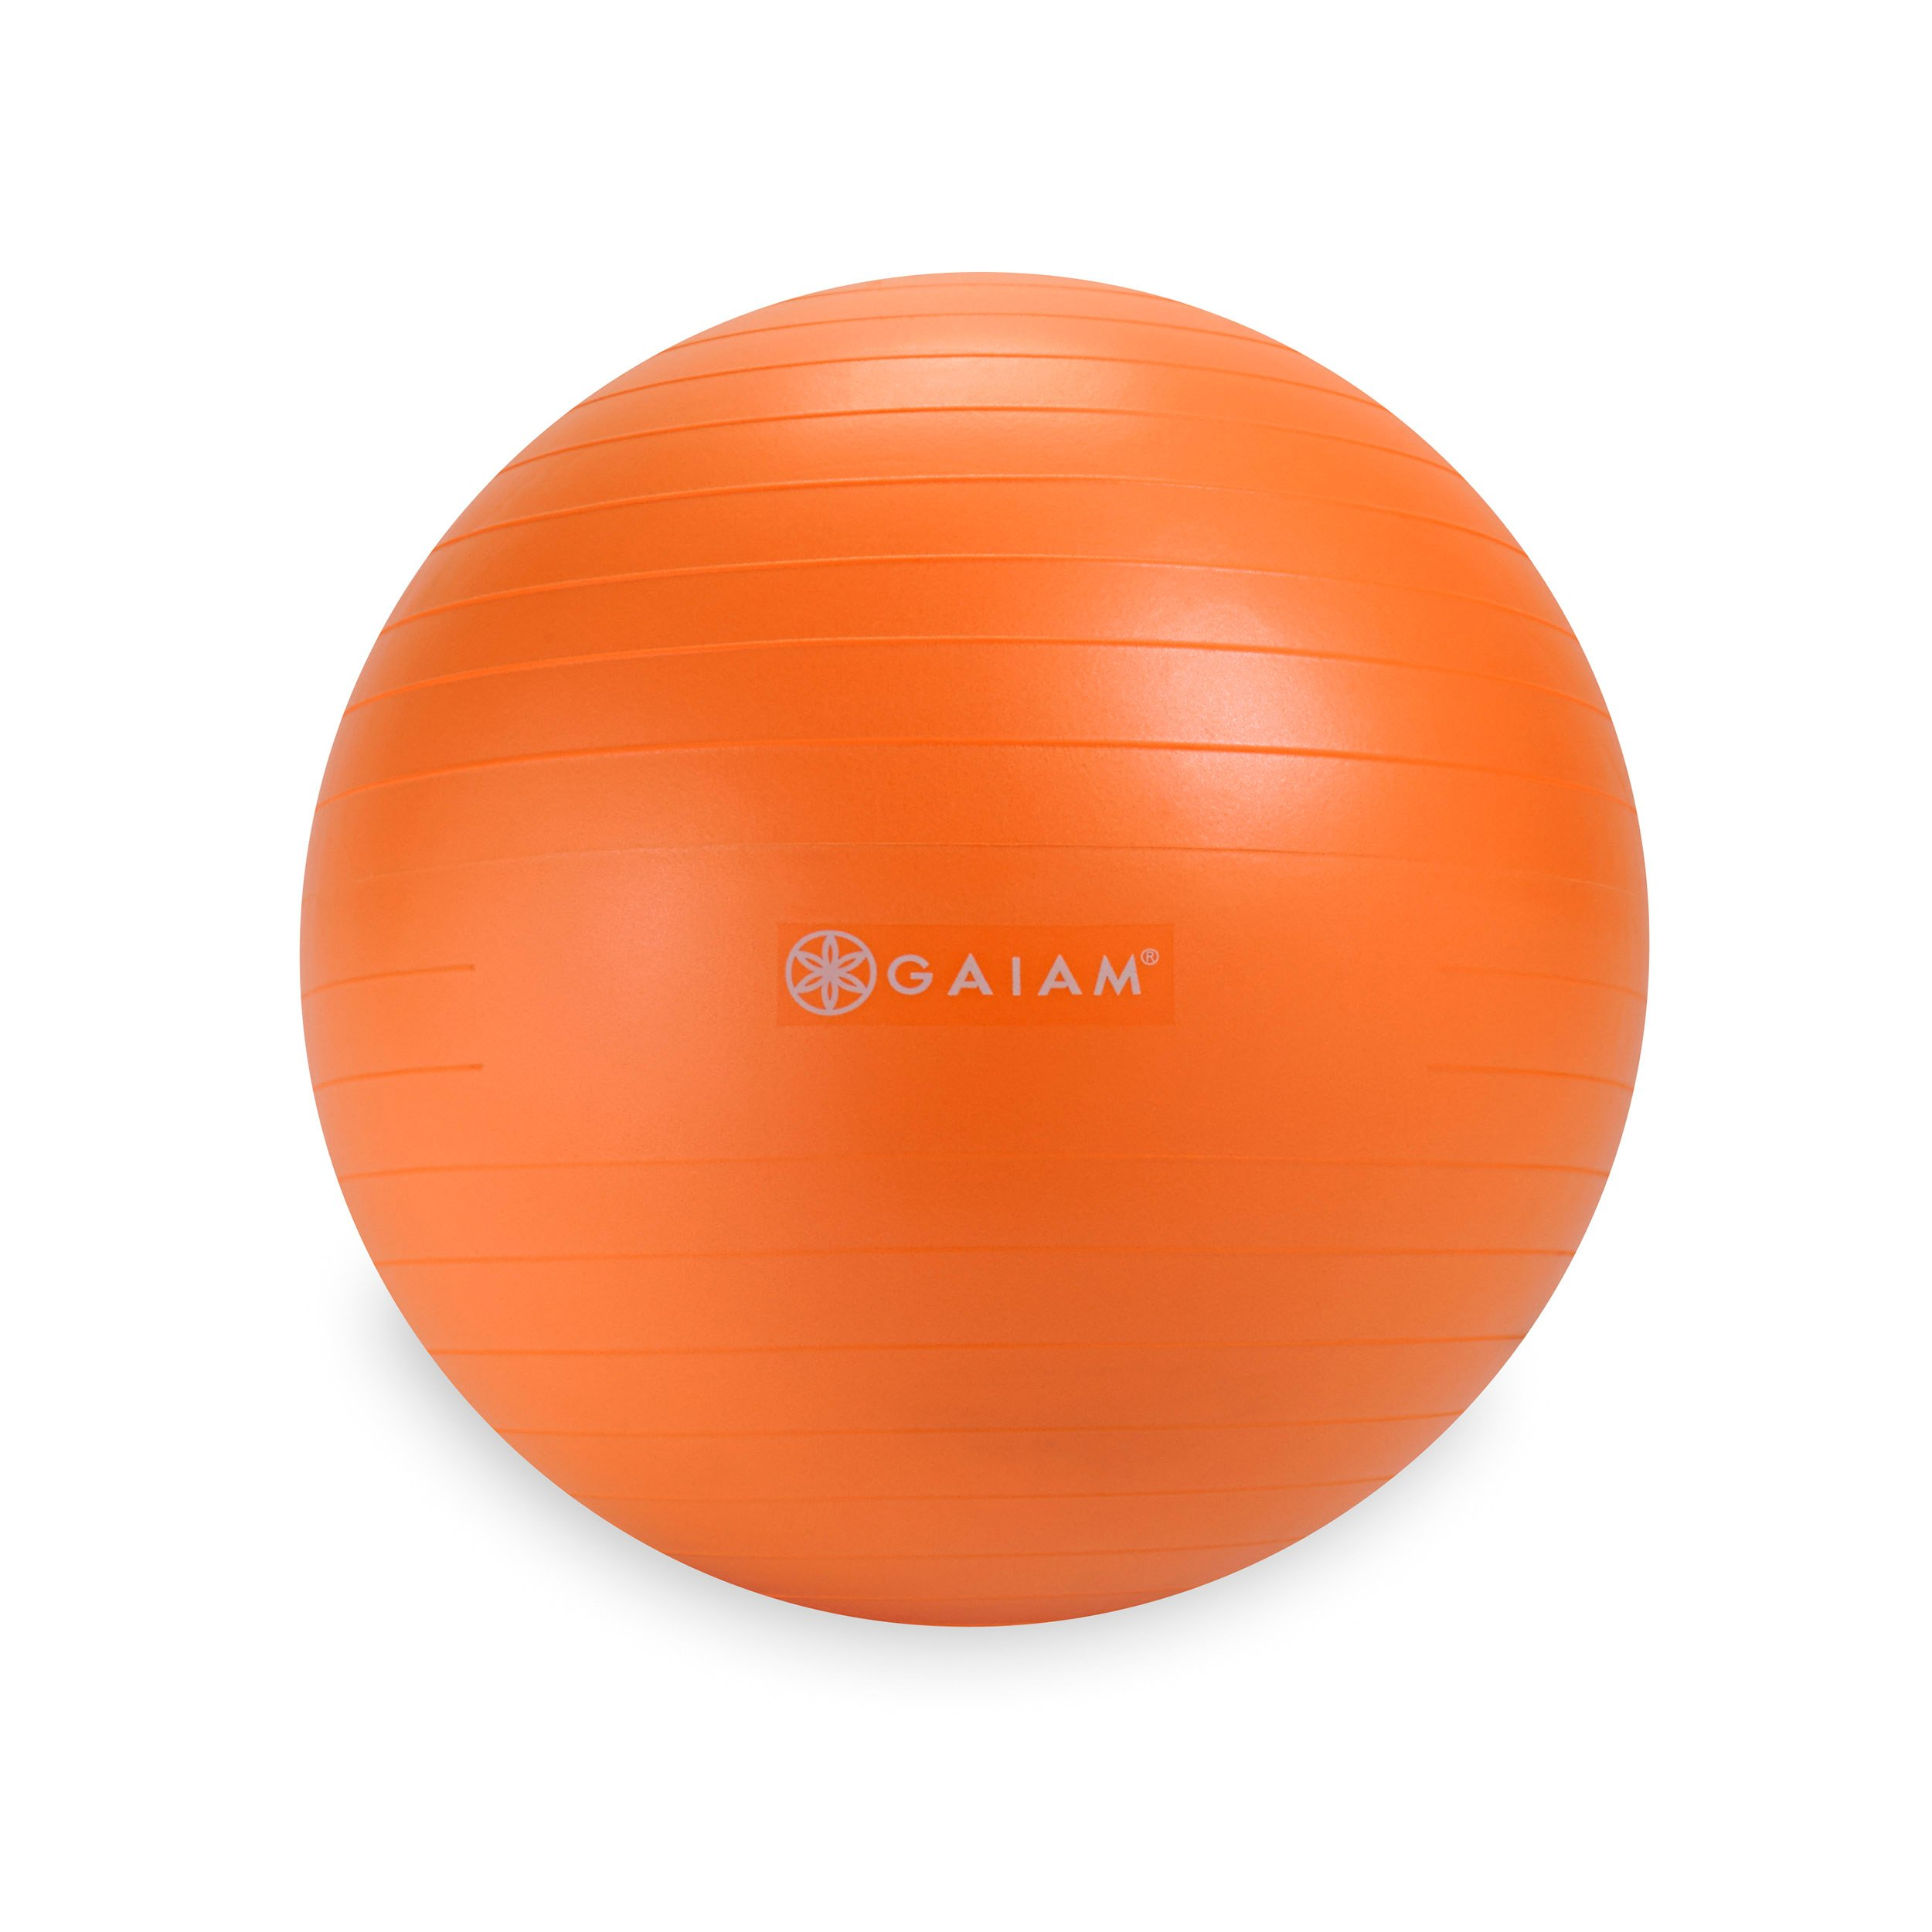 Gaiam Kids Balance Ball - Exercise Stability Yoga Ball, Kids Alternative Flexible Seating for Active Children in Home or Classroom (Satisfaction Guarantee), Orange, 45cm